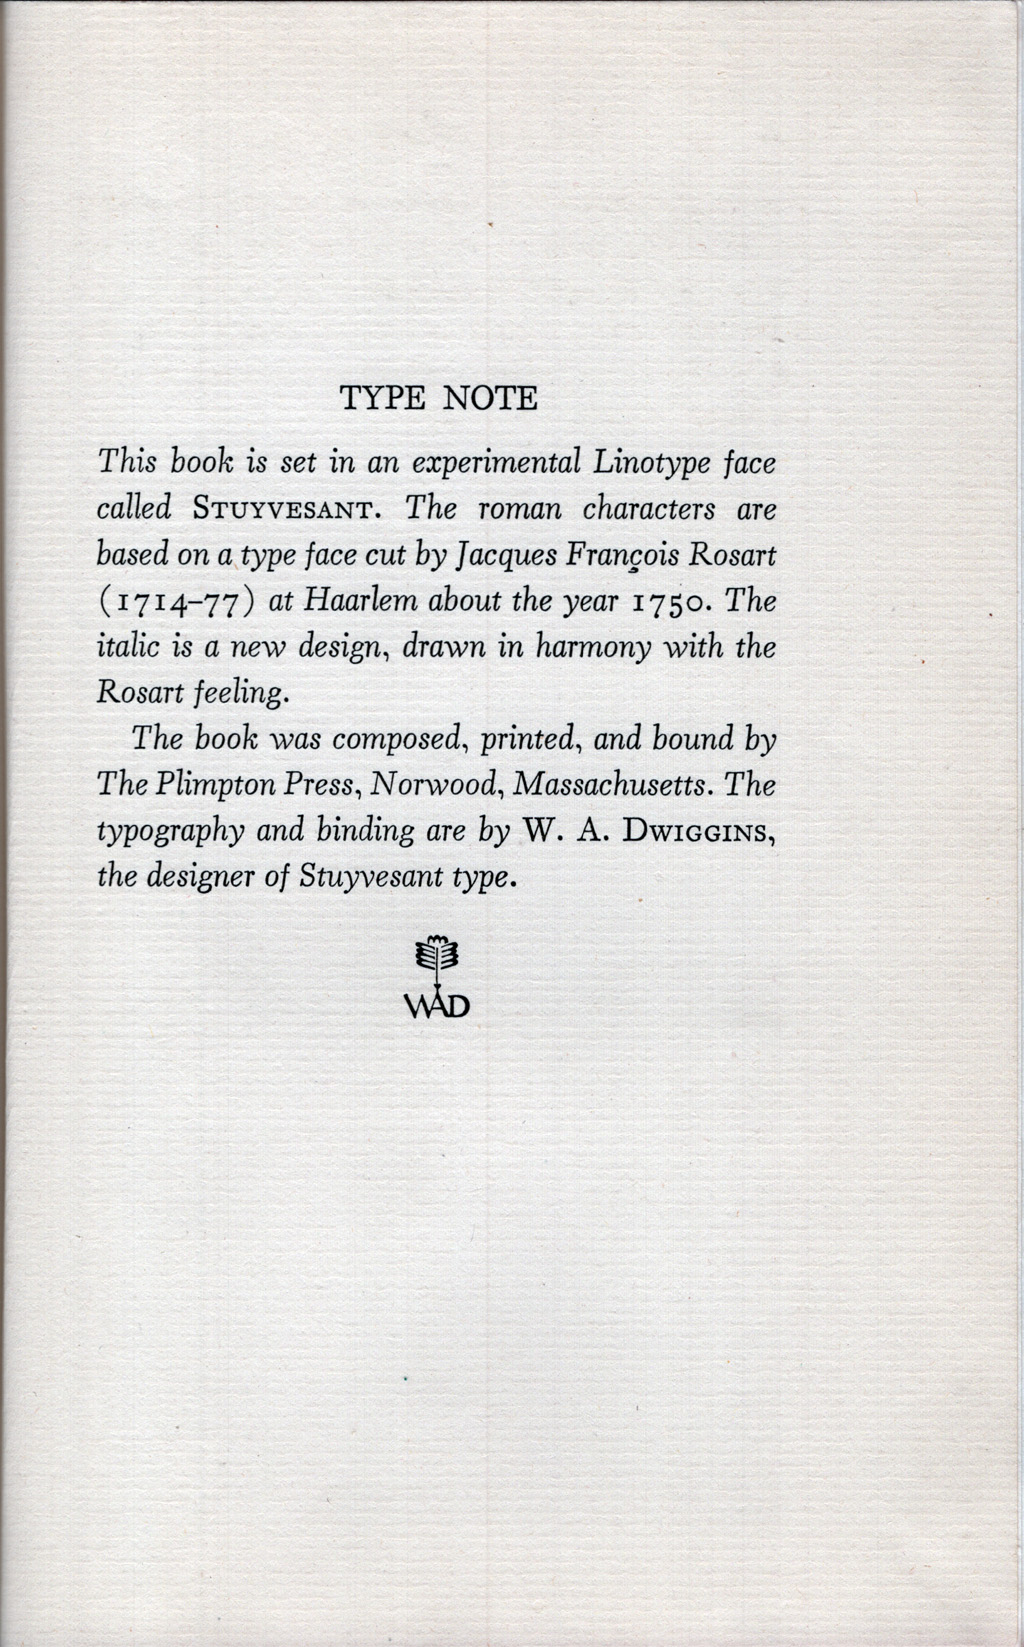 Colophon for The Necessary Angel by Wallace Stevens (New York: Alfred A. Knopf, Inc., 1951).